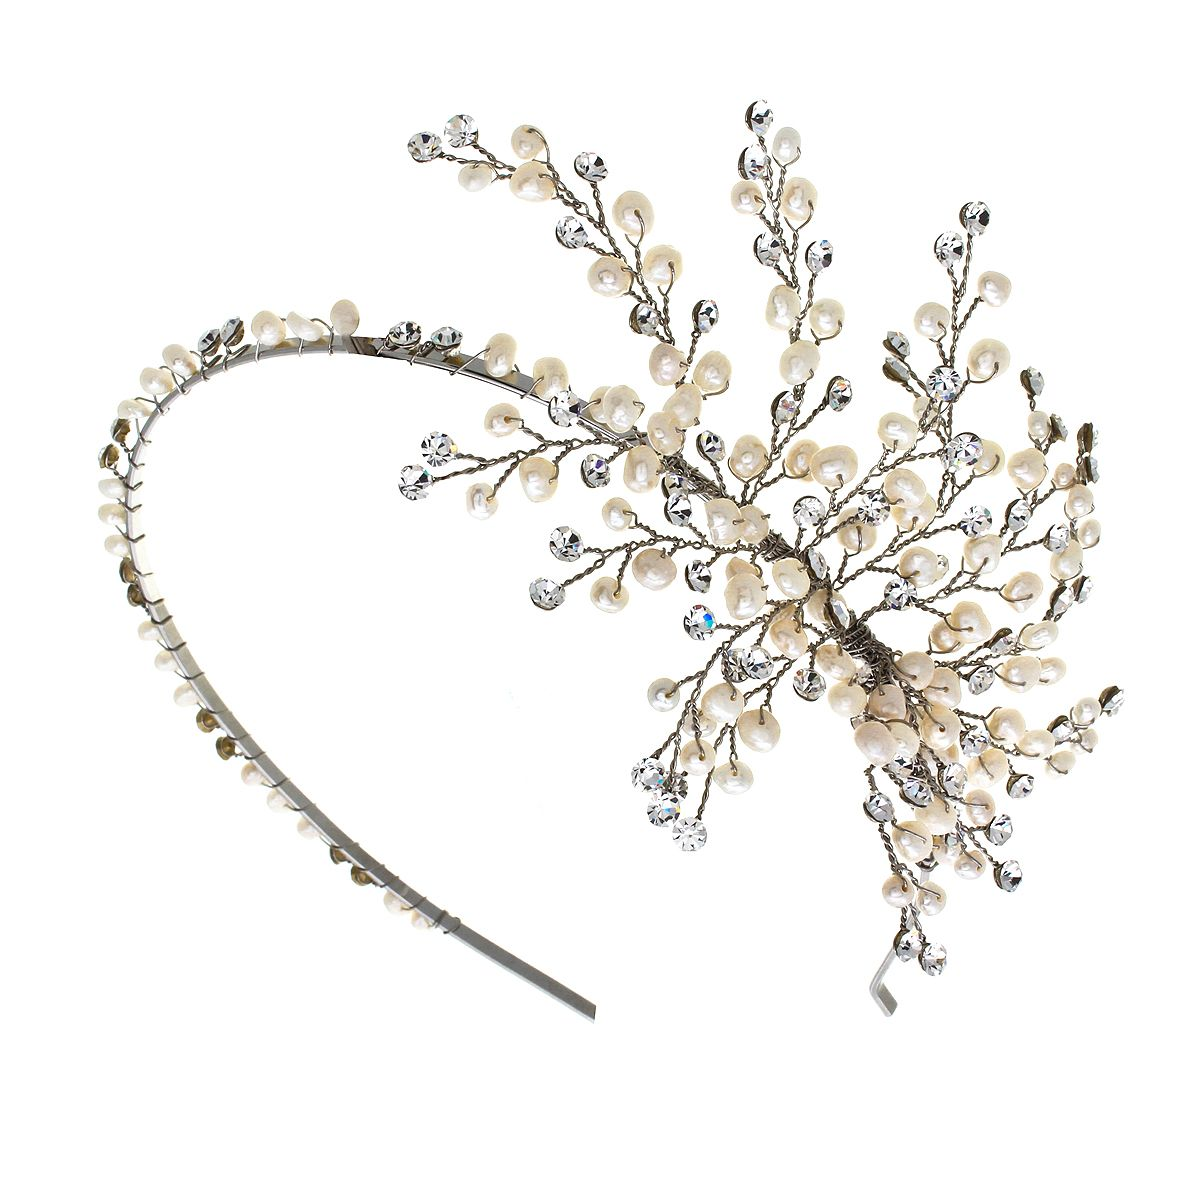 With luxurious Rhodium plated Silver and just below a hundred freshwater pearls the Lorraine headband oozes vintage glamour with a modern edge.    It is made with ivory freshwater pearls, rhodium plated silver & clear crystals.